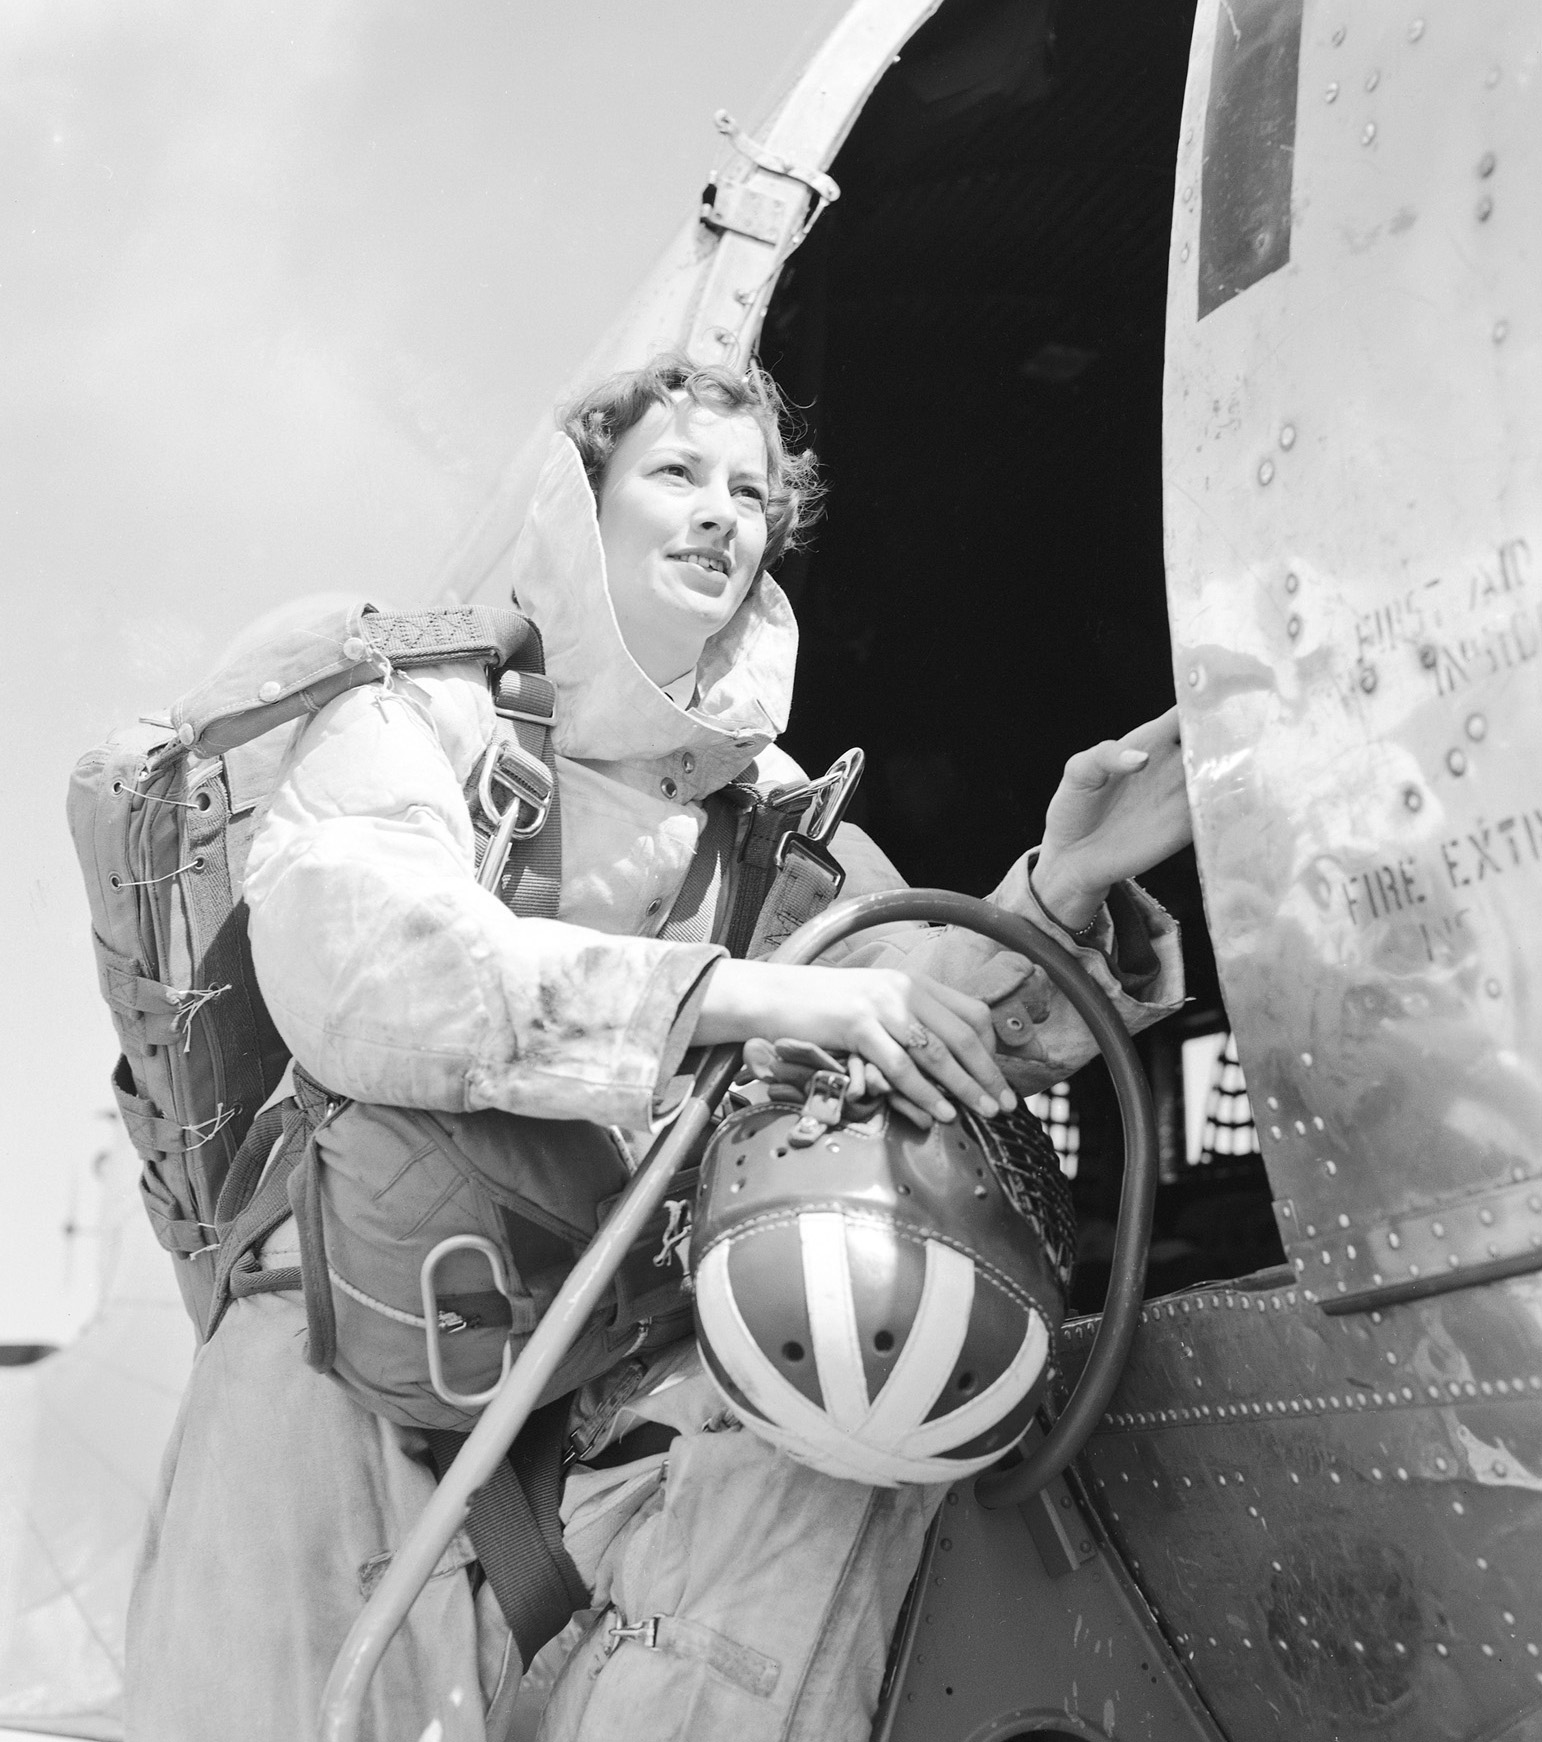 A photo of Flying Officer Marian Neilly, an RCAF para rescue nursing sister who participated in Operation Pike's Peak at Lowry Airforce Base, Denver Colorado, on March 24, 1955. The Joint USAF/RCAF exercise aided the two services' rescue units in adopting a system whereby both can participate in rescue missions in either country. PHOTO: DND Archives, PL-76256